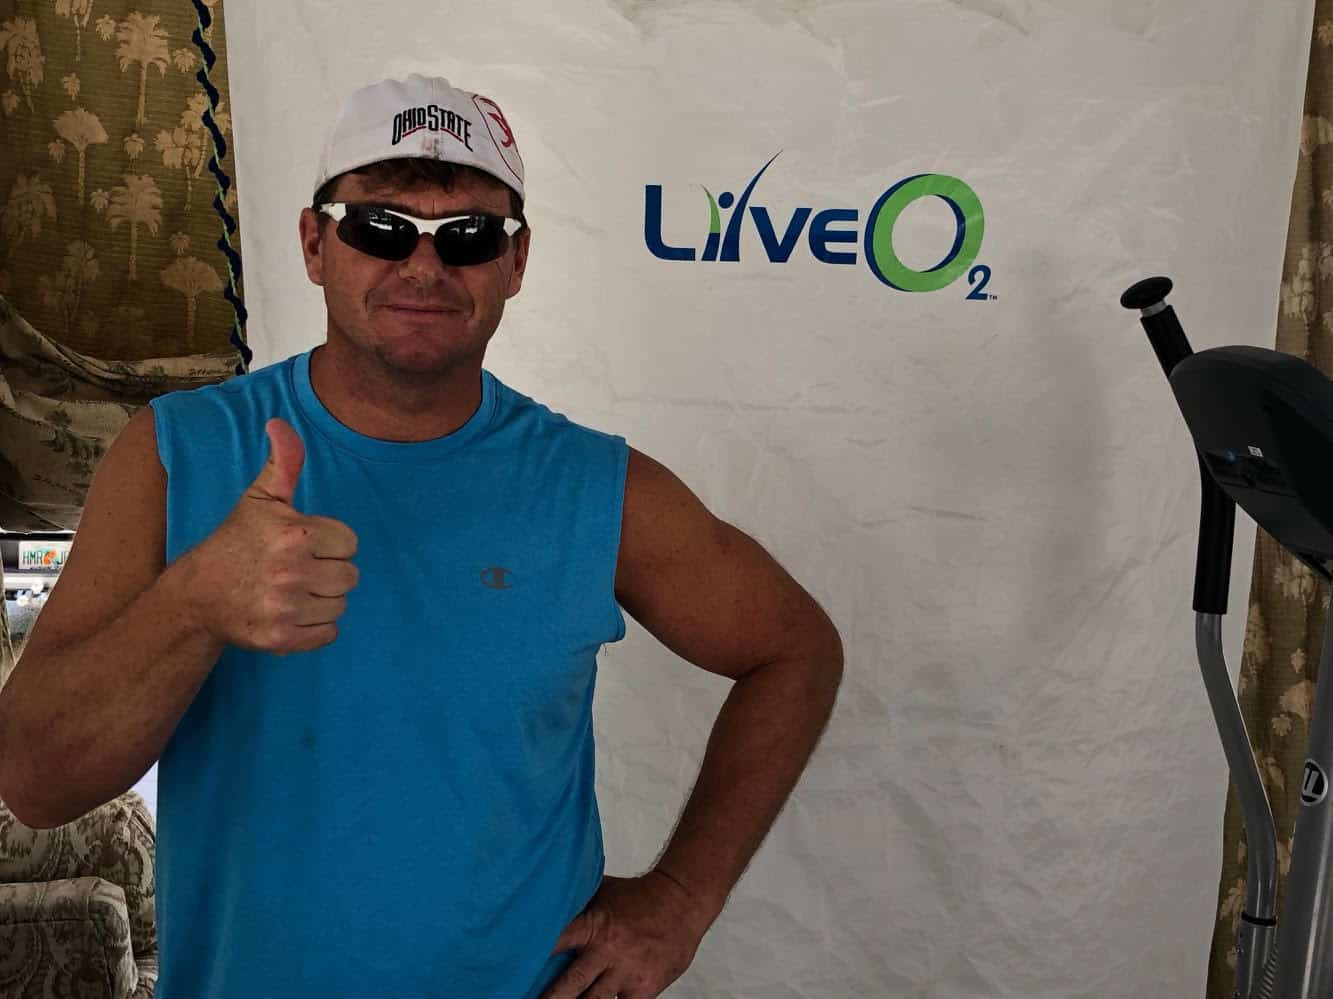 Jeff thumbs up LiveO2